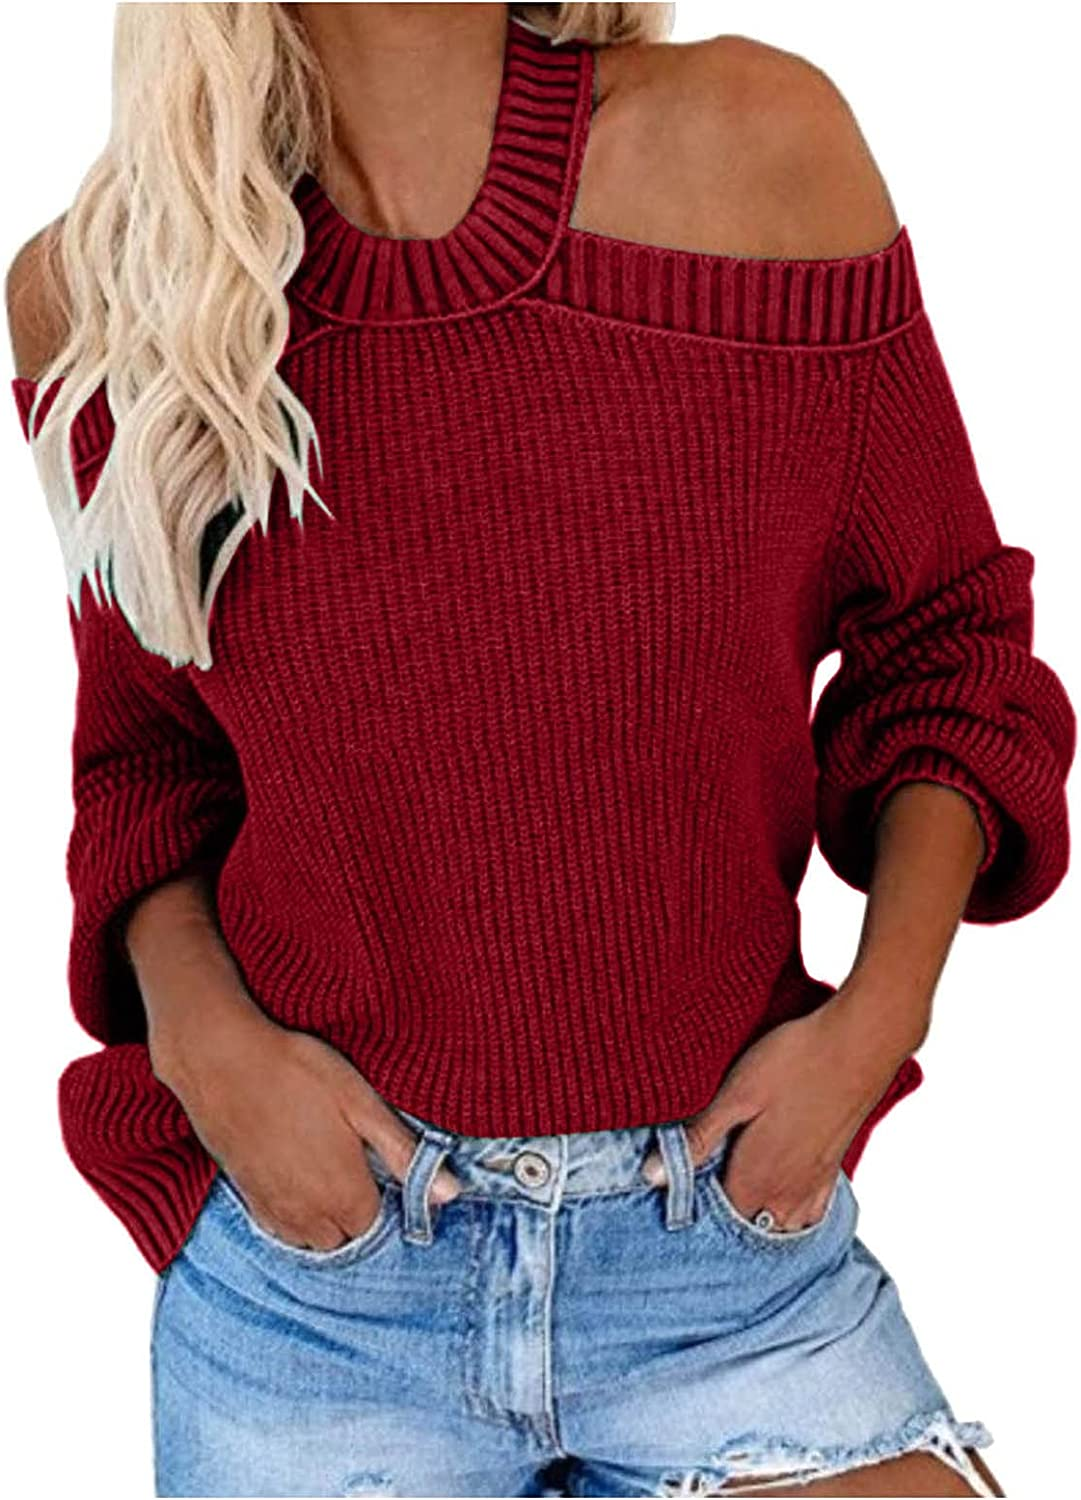 PLENTOP Womens Sweaters Oversized Long Sleeve Cold Shoulder Tops Shirt Tunic Sweatshirt Casual Loose Knit Blouse